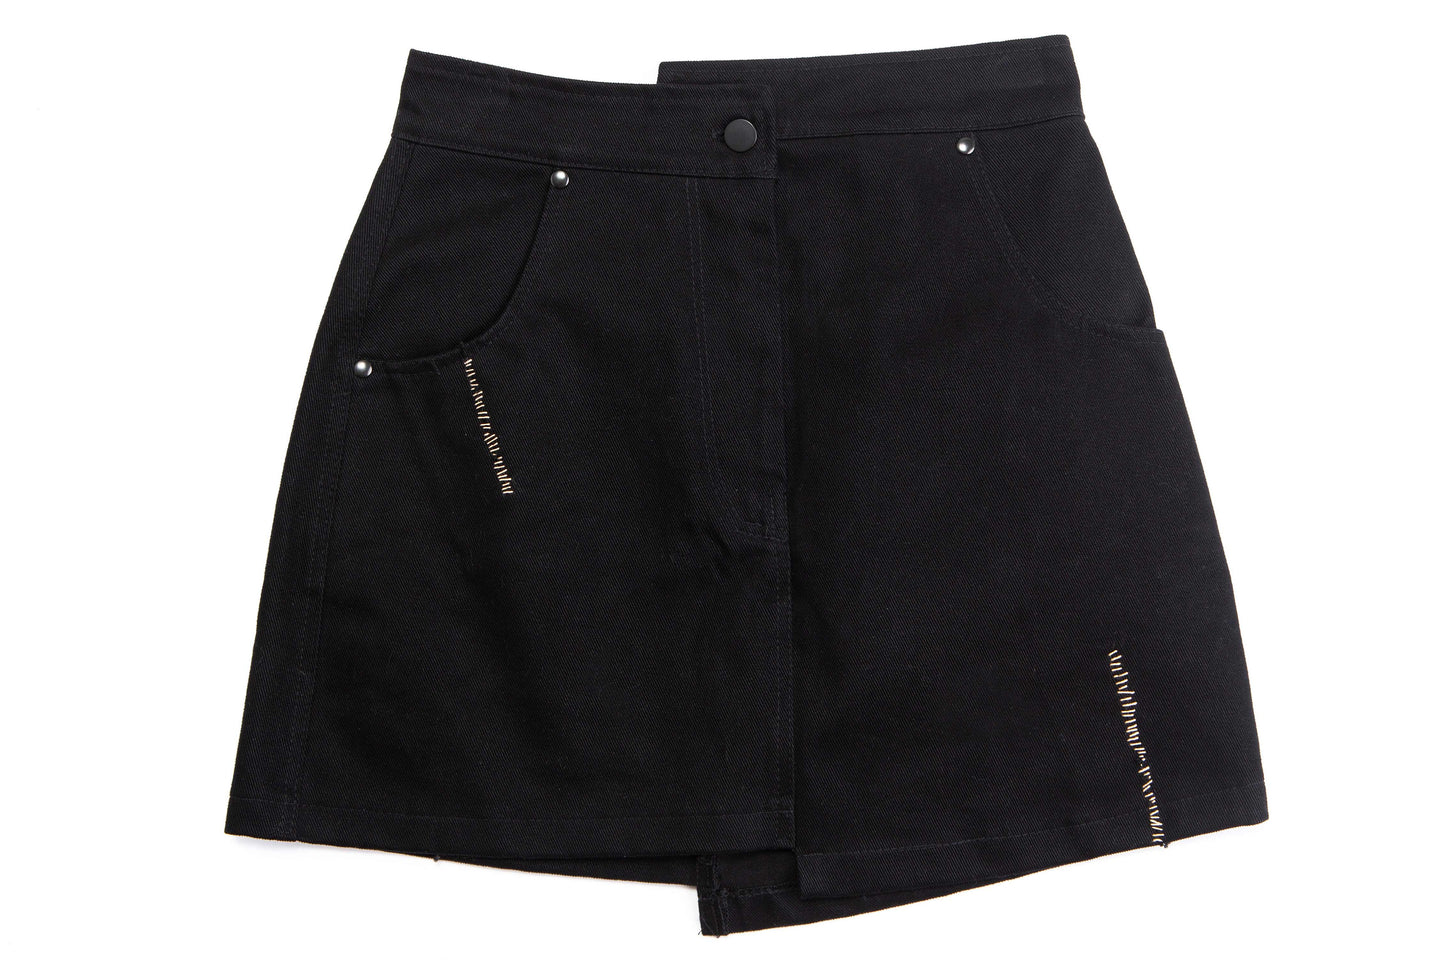 GRIEF MINI SKIRT